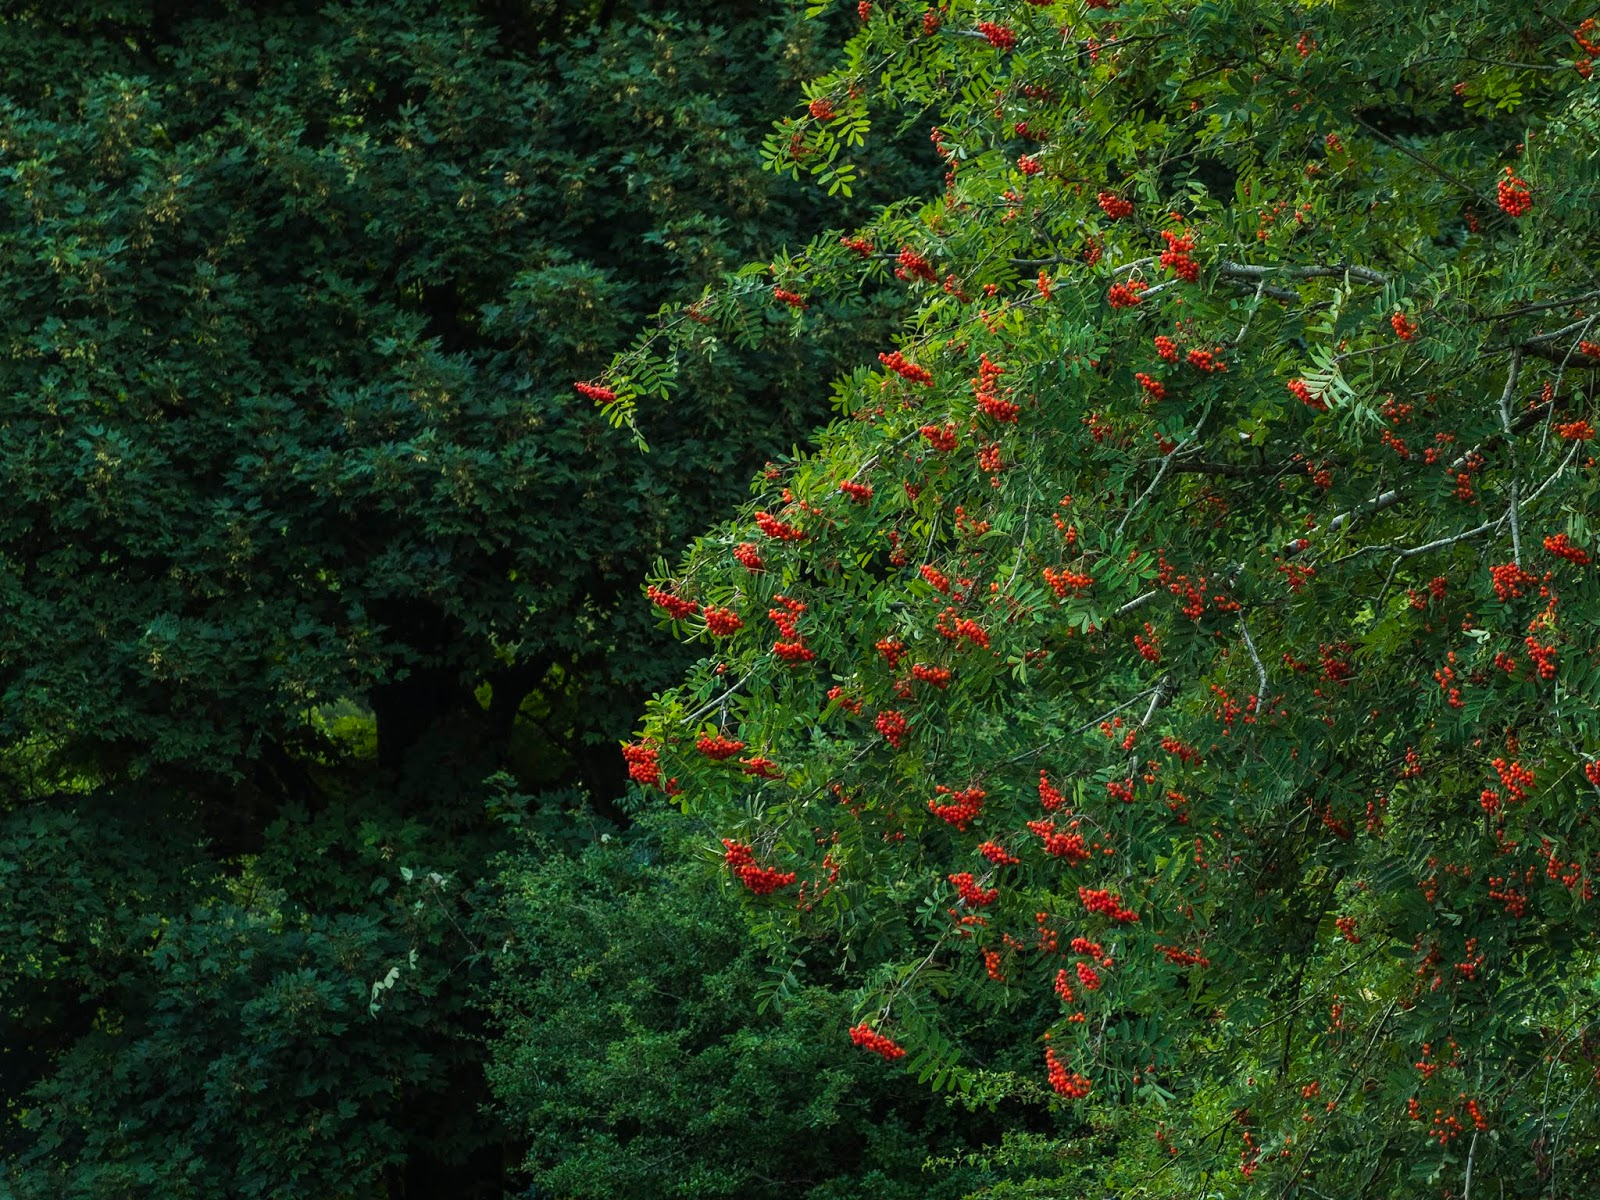 A Mountain Ash with orange berries and a Maple tree behind it.